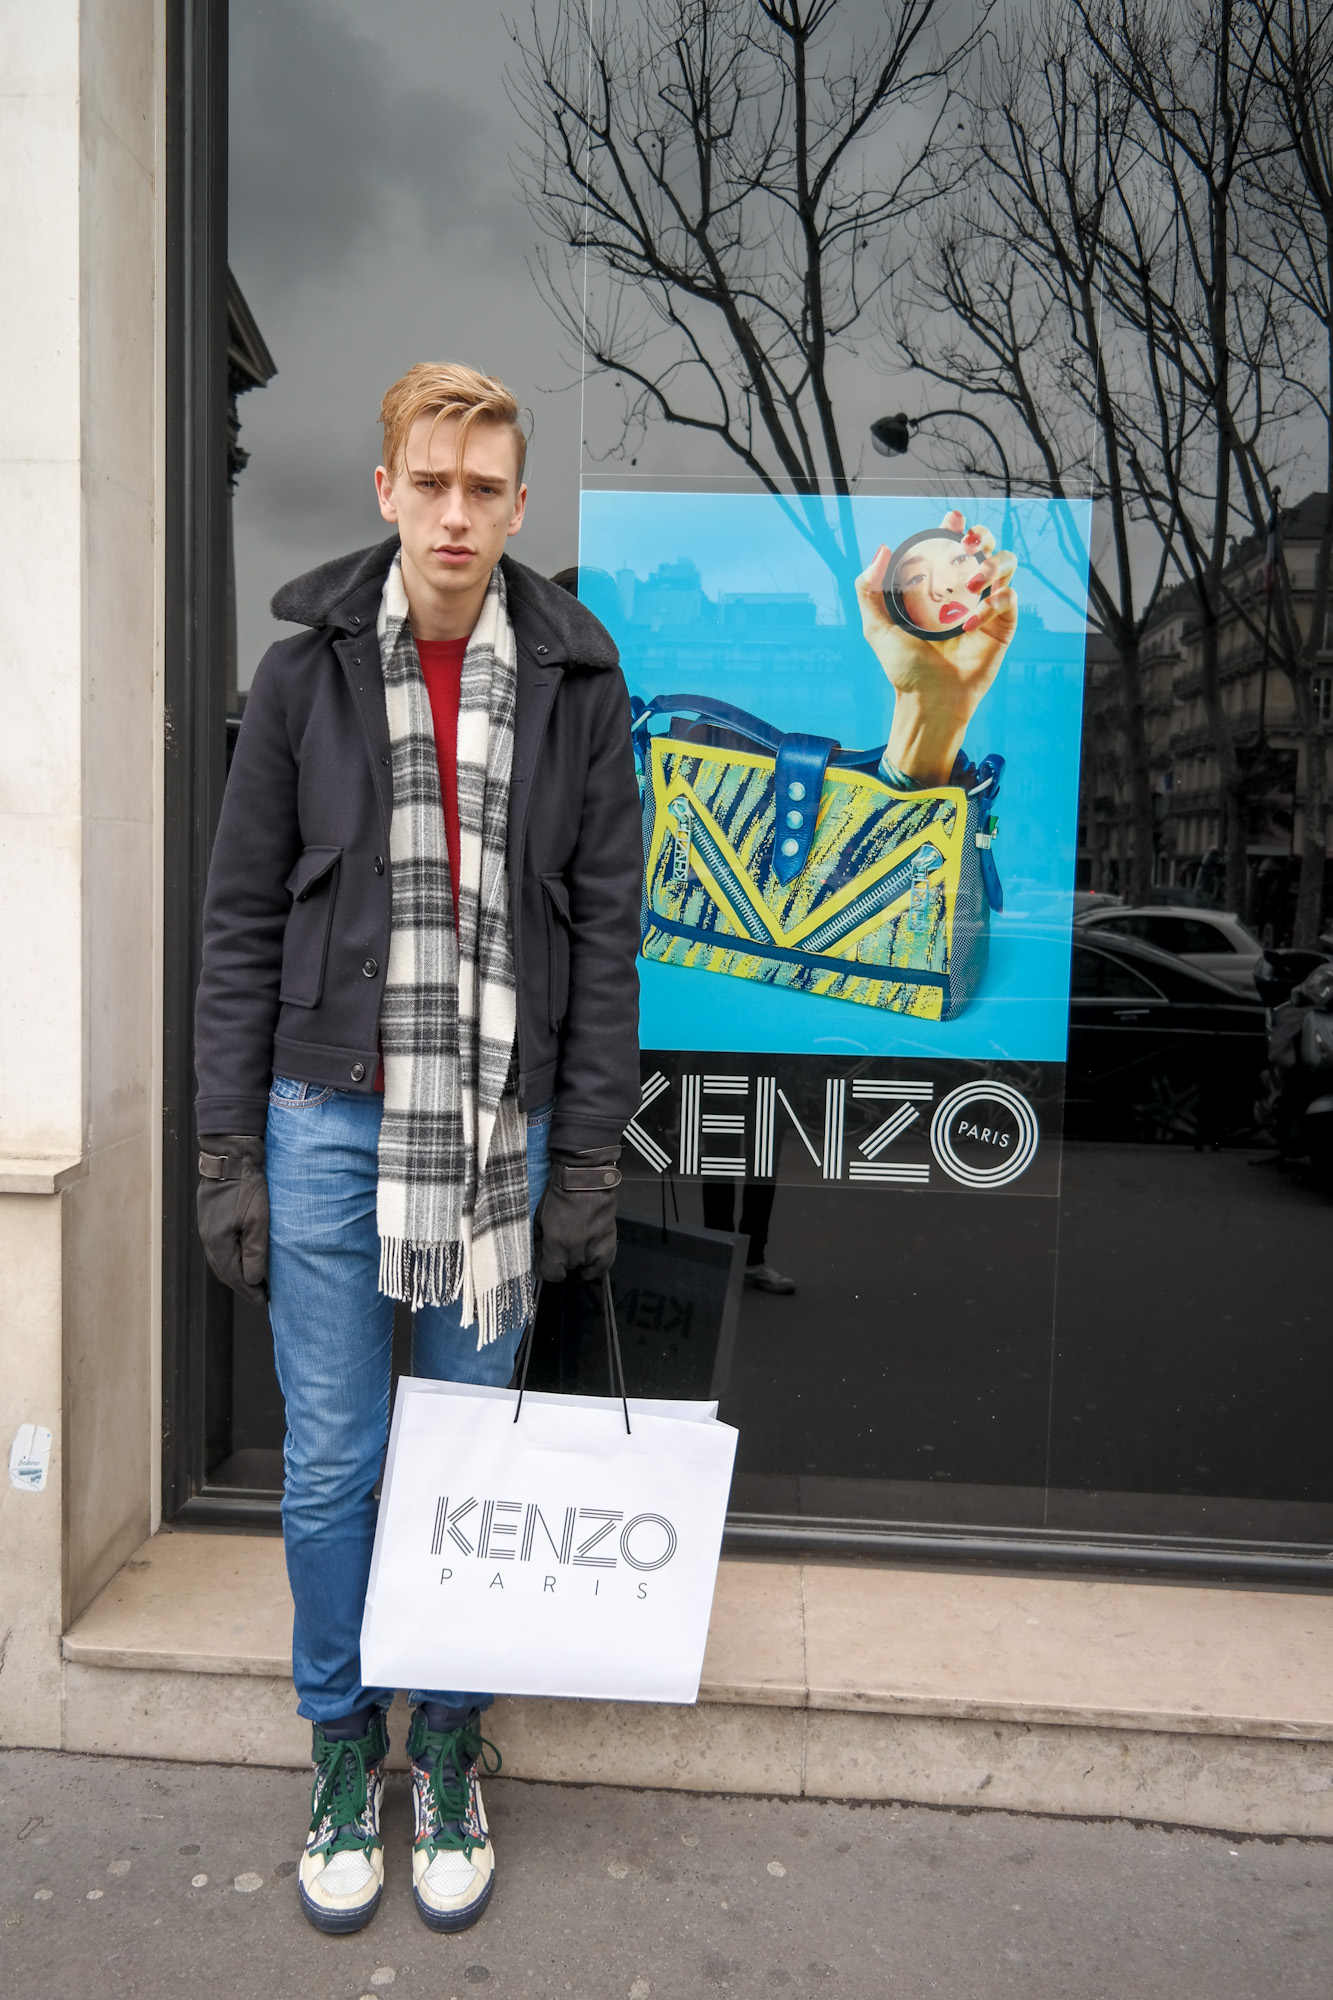 Exhausted after the KENZO shopping spree ;-)